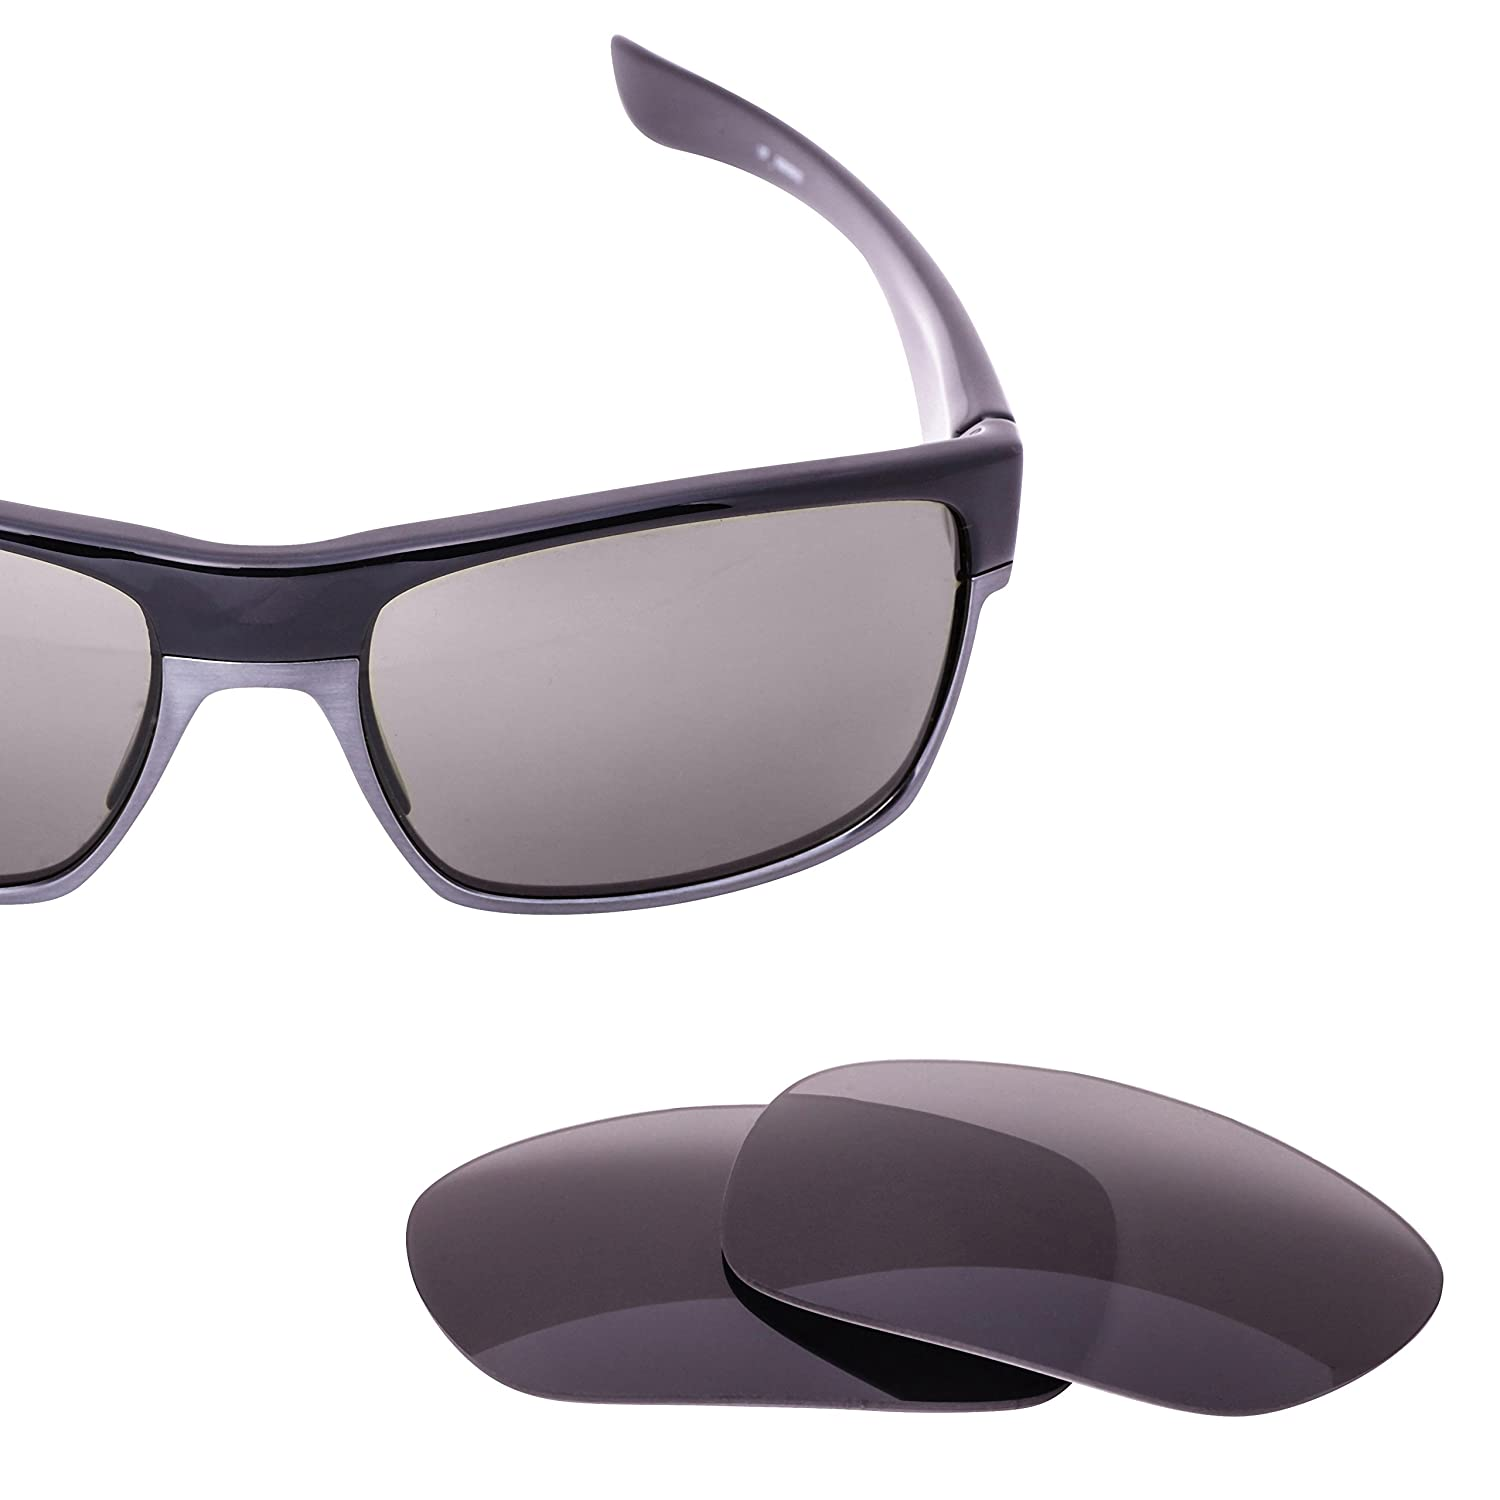 7de92b400d LenzFlip Replacement Lenses for Oakley TwoFace Sunglasses - Gray Black  Polarized Lenses  Amazon.in  Clothing   Accessories